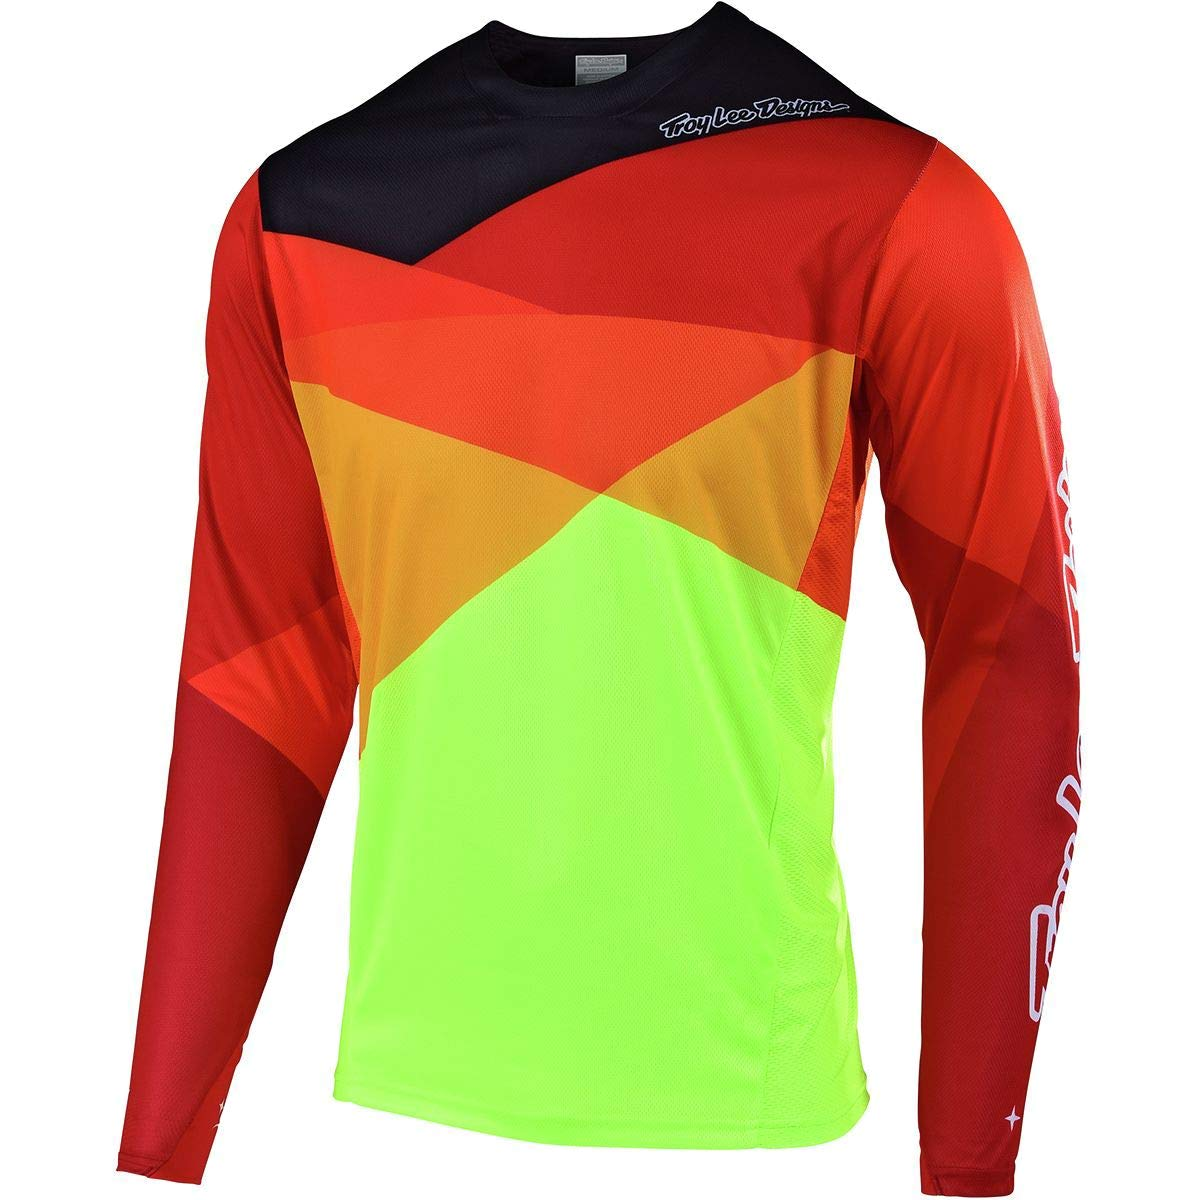 Troy Lee Designs Sprint Jersey - Men's Jet Yellow/Orange, S